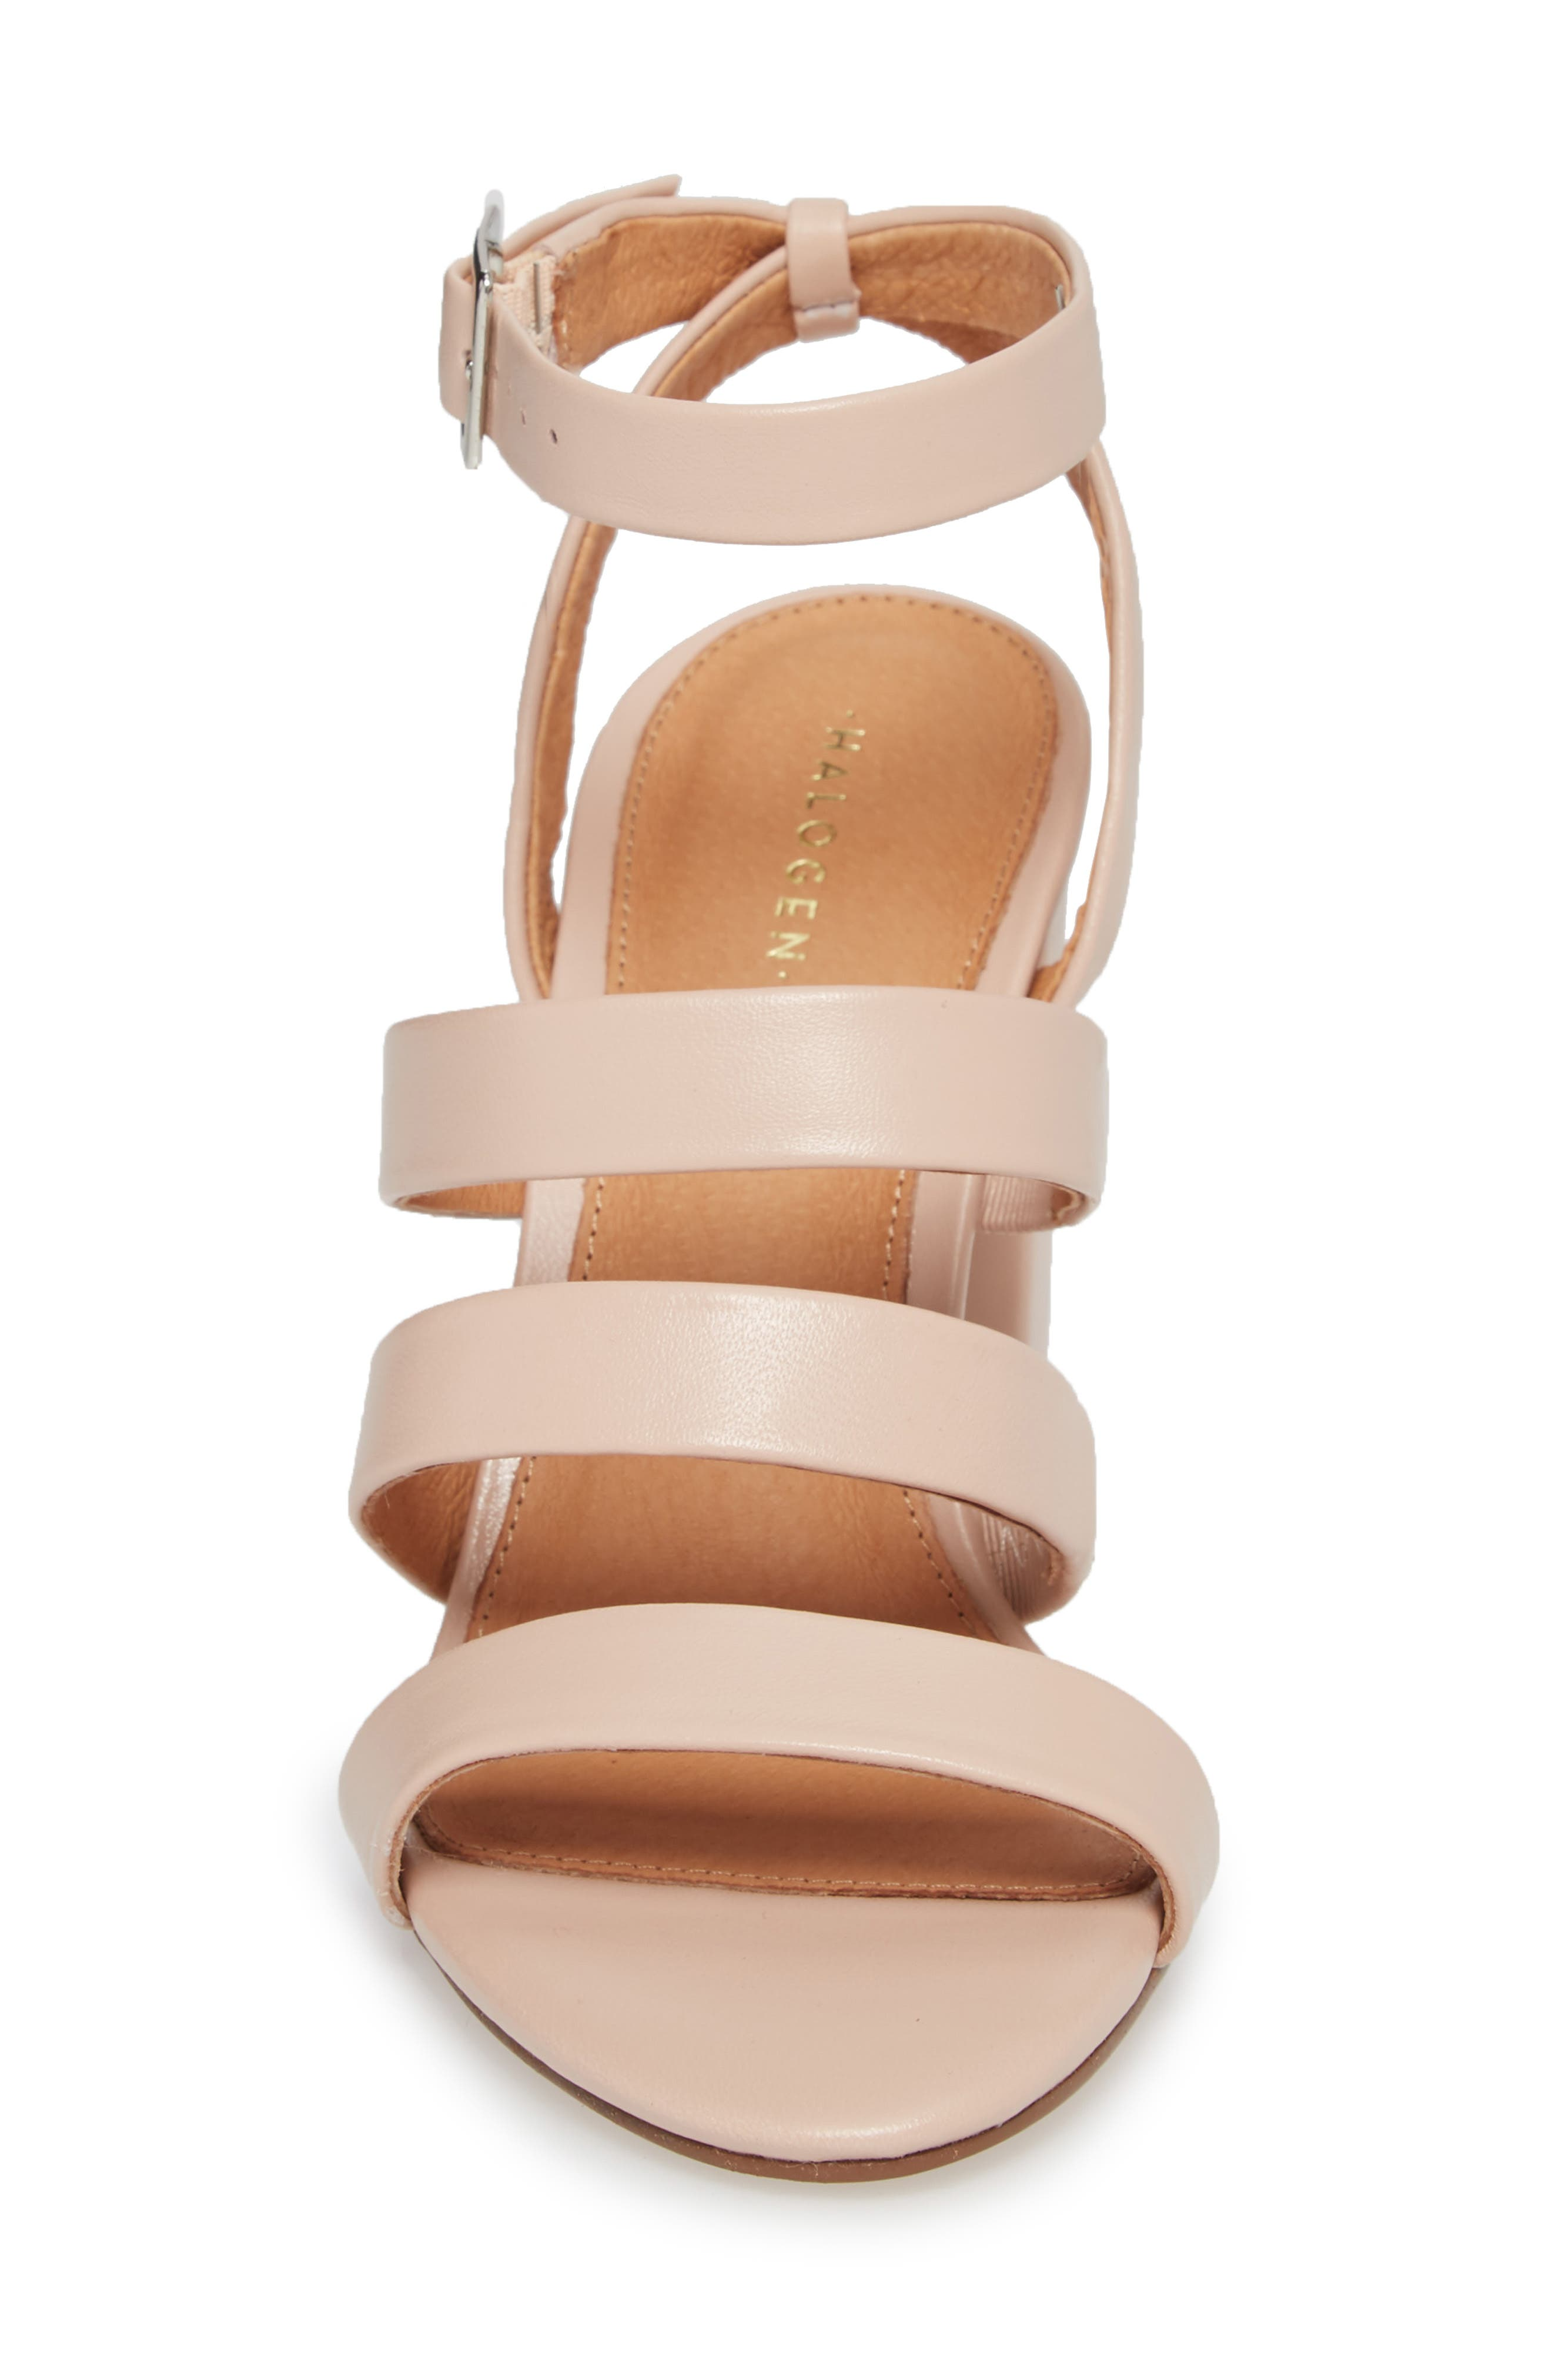 Rocco Sandal,                             Alternate thumbnail 4, color,                             BLUSH LEATHER